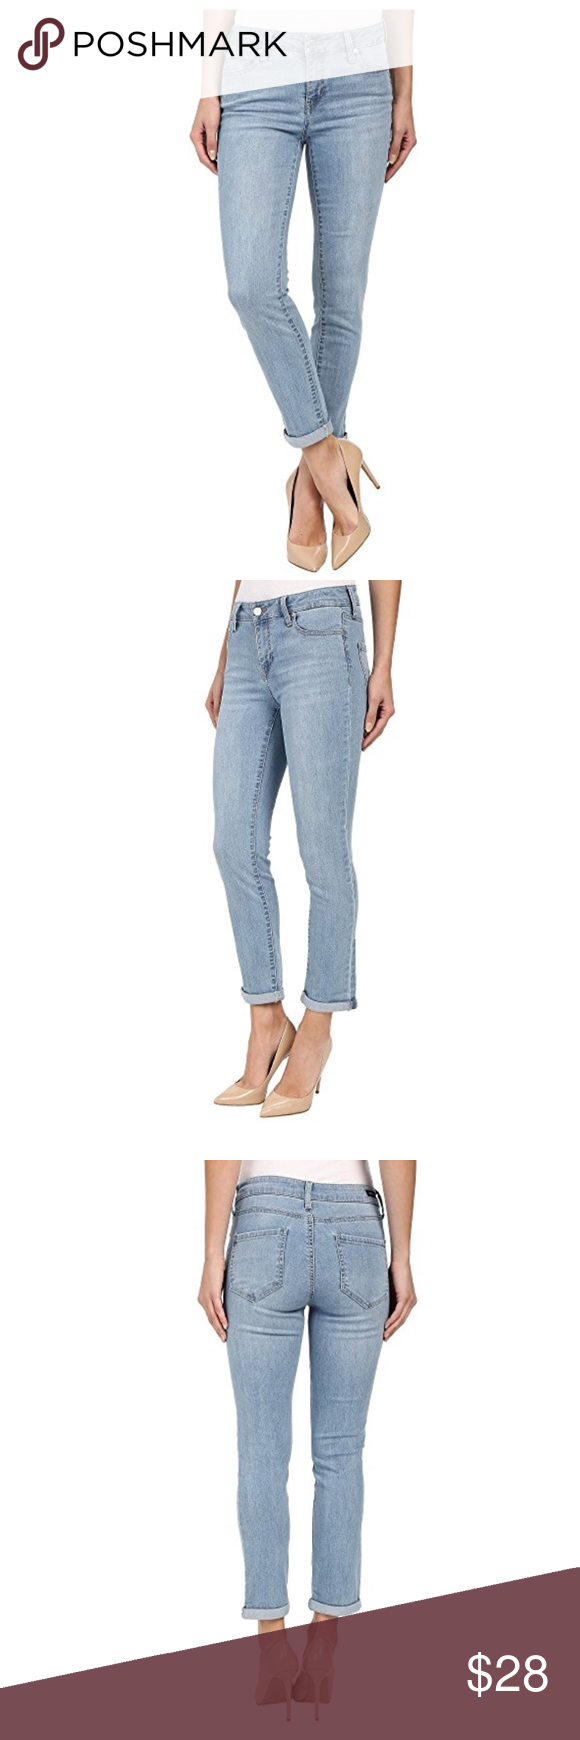 766c1432c4 NWT Liverpool Jean Company crop jeans NWT. Liverpool 26 in inseam crop jeans  with rolled